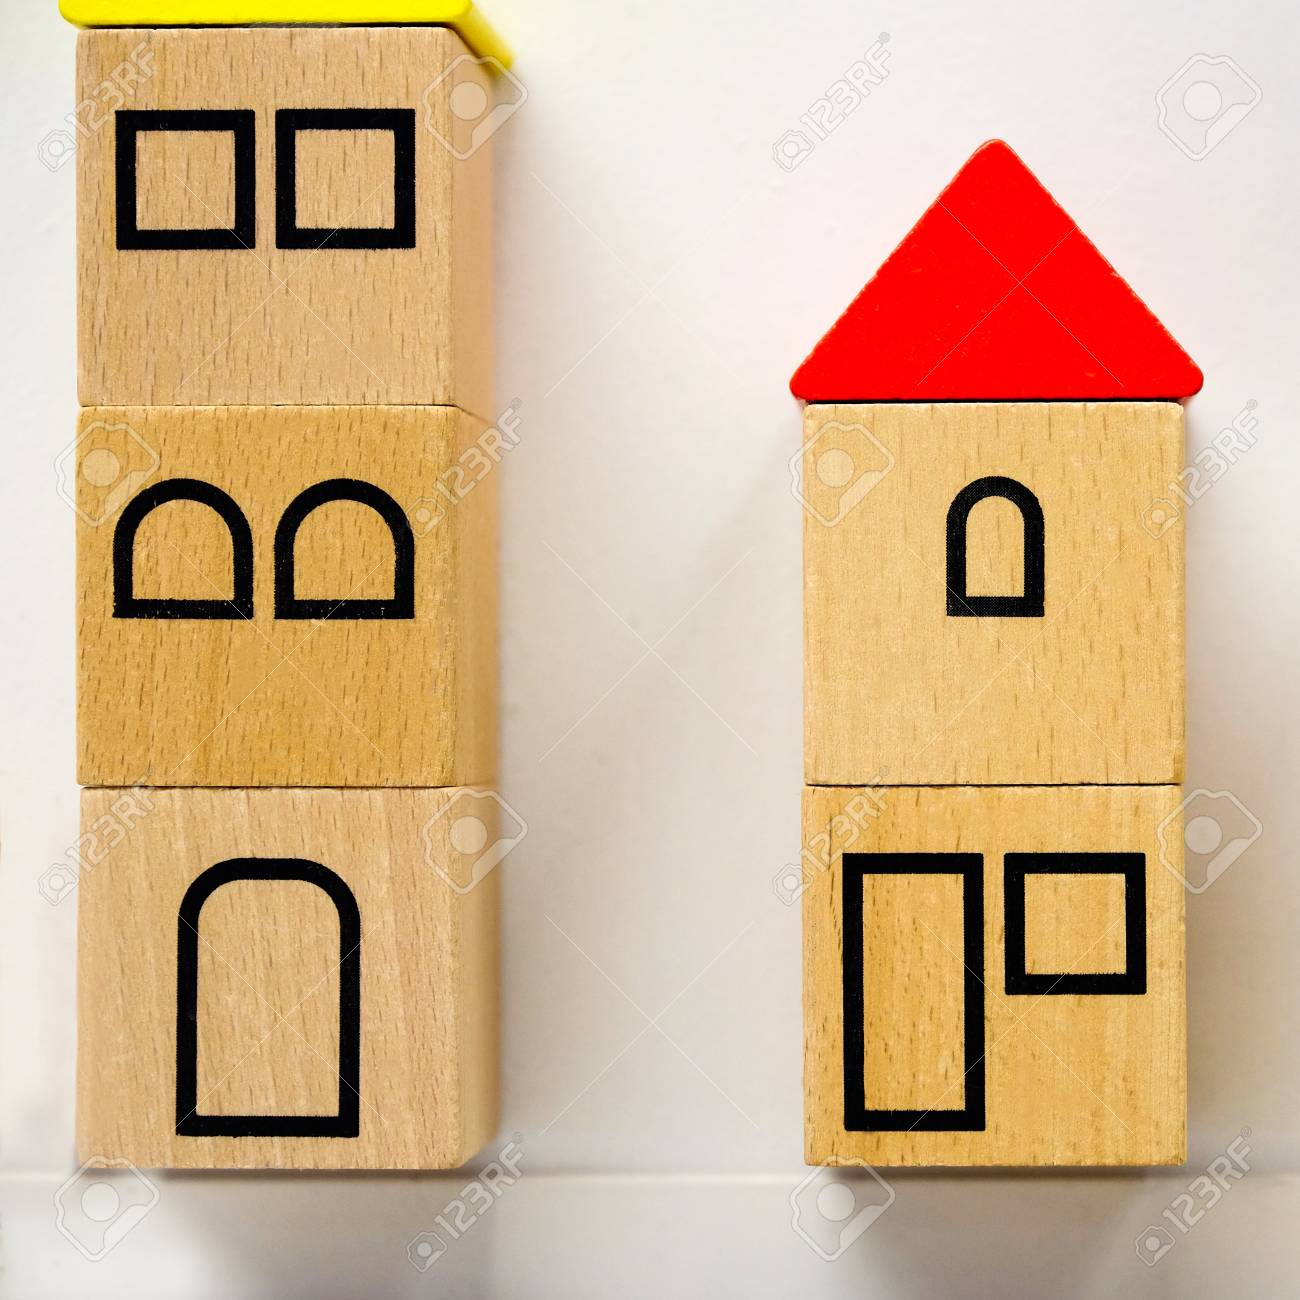 Small Toy Houses Made Of Wooden Blocks With Painted Windows